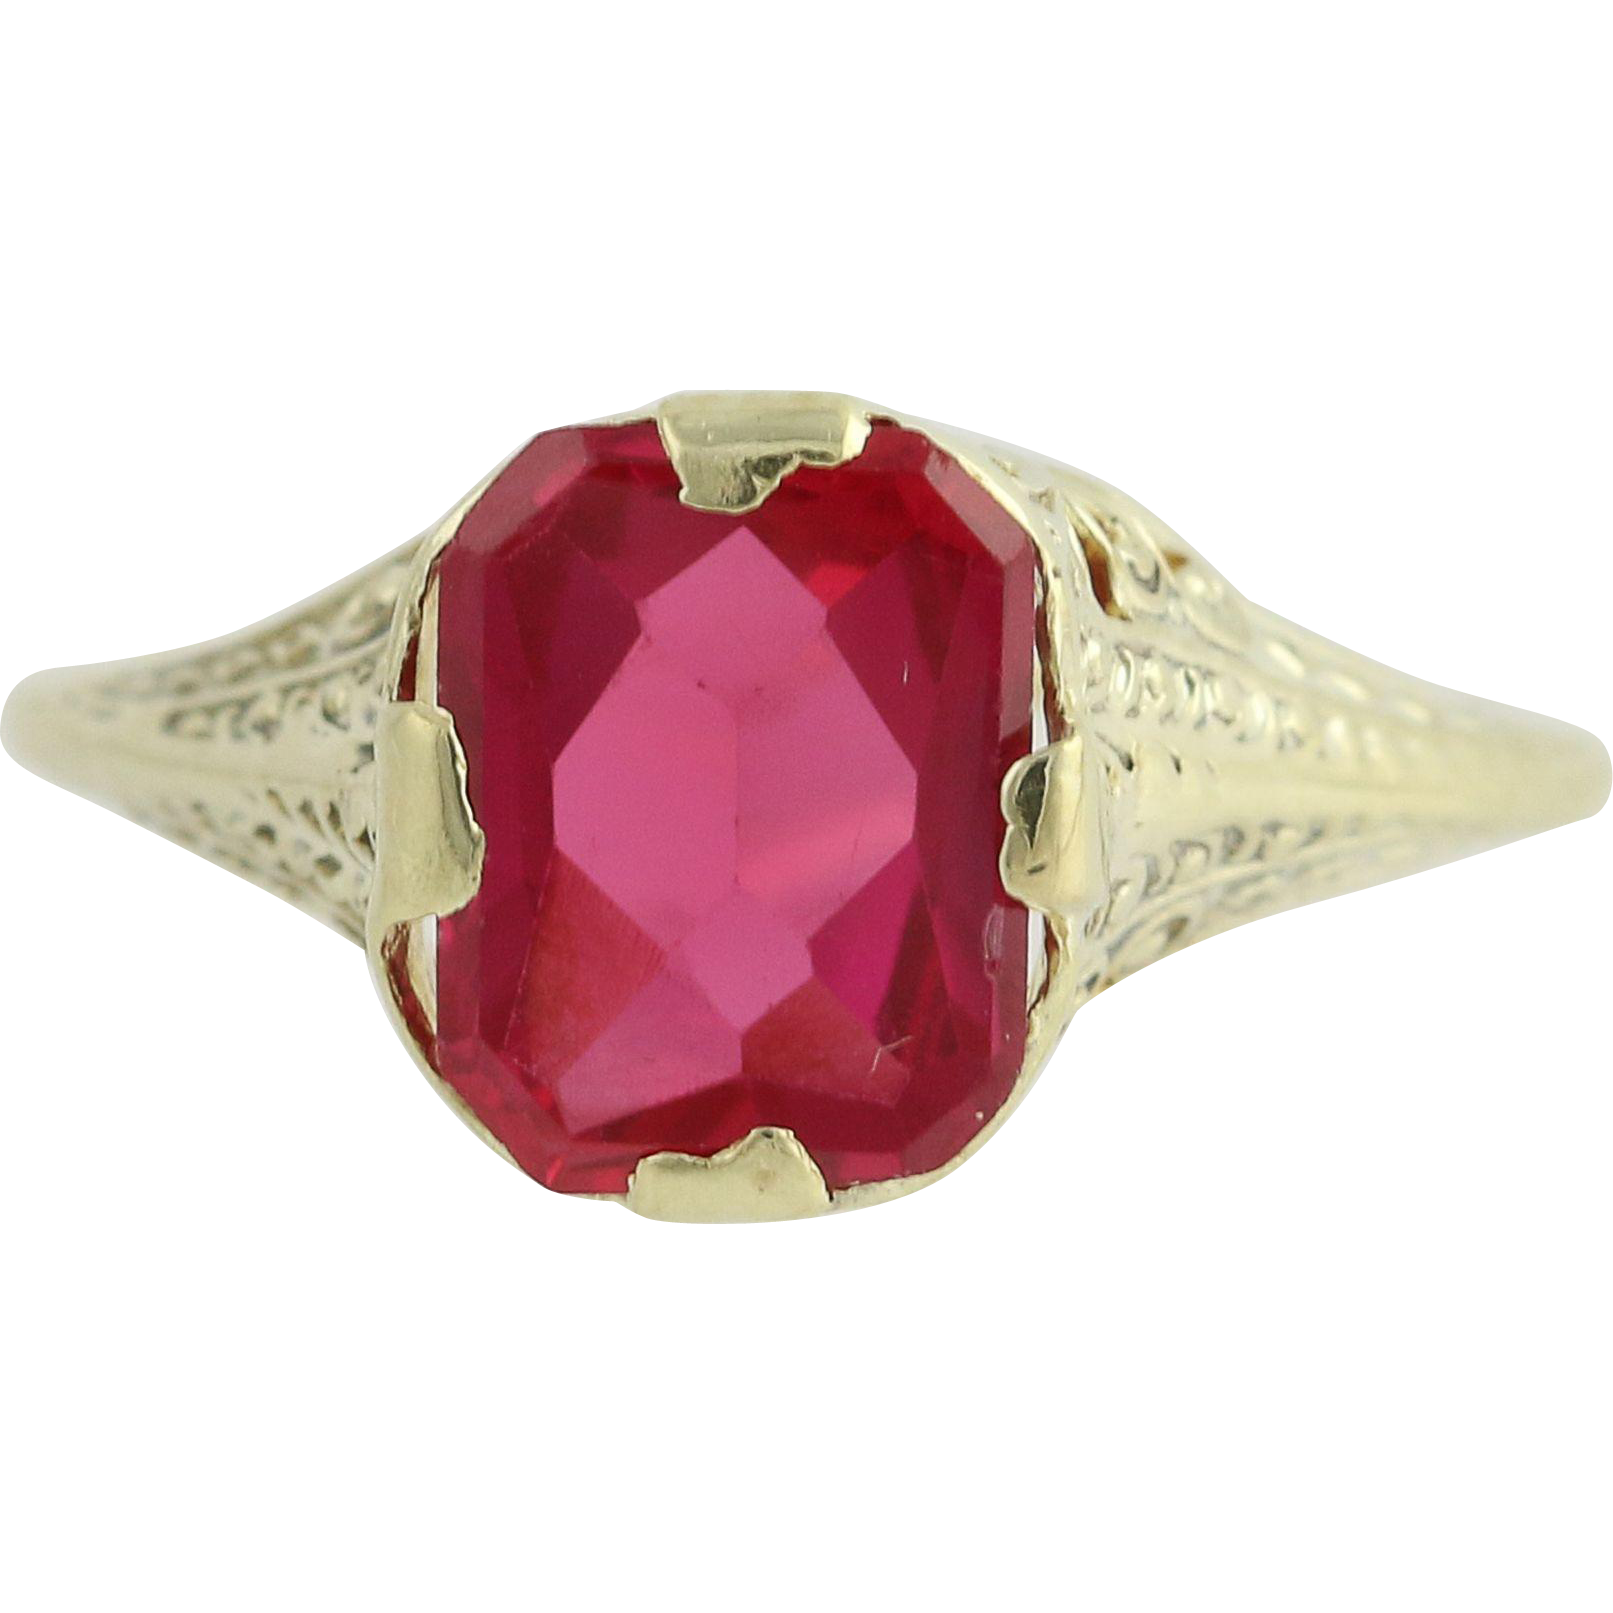 Art Deco Synthetic Ruby Ring - 14k Yellow Gold July Vintage Solitaire